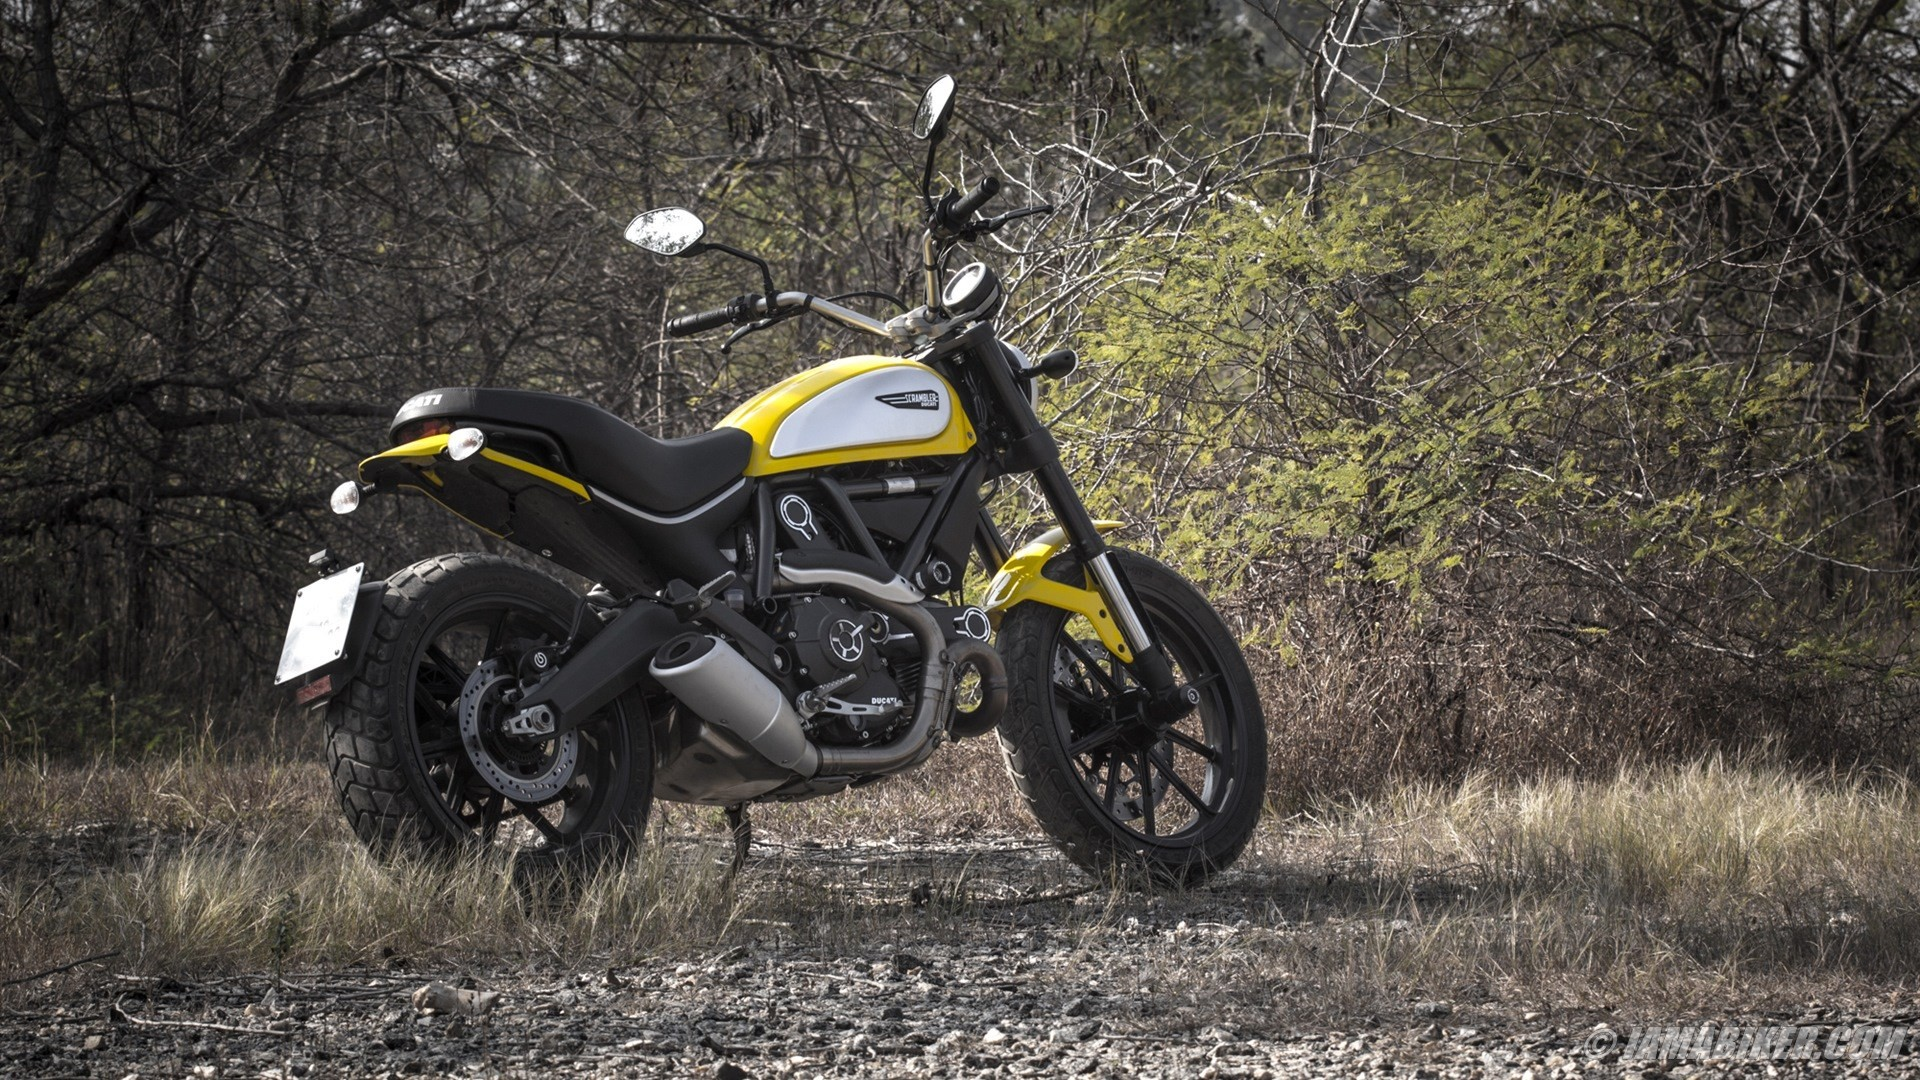 1920x1080 Ducati Scrambler HD wallpapers